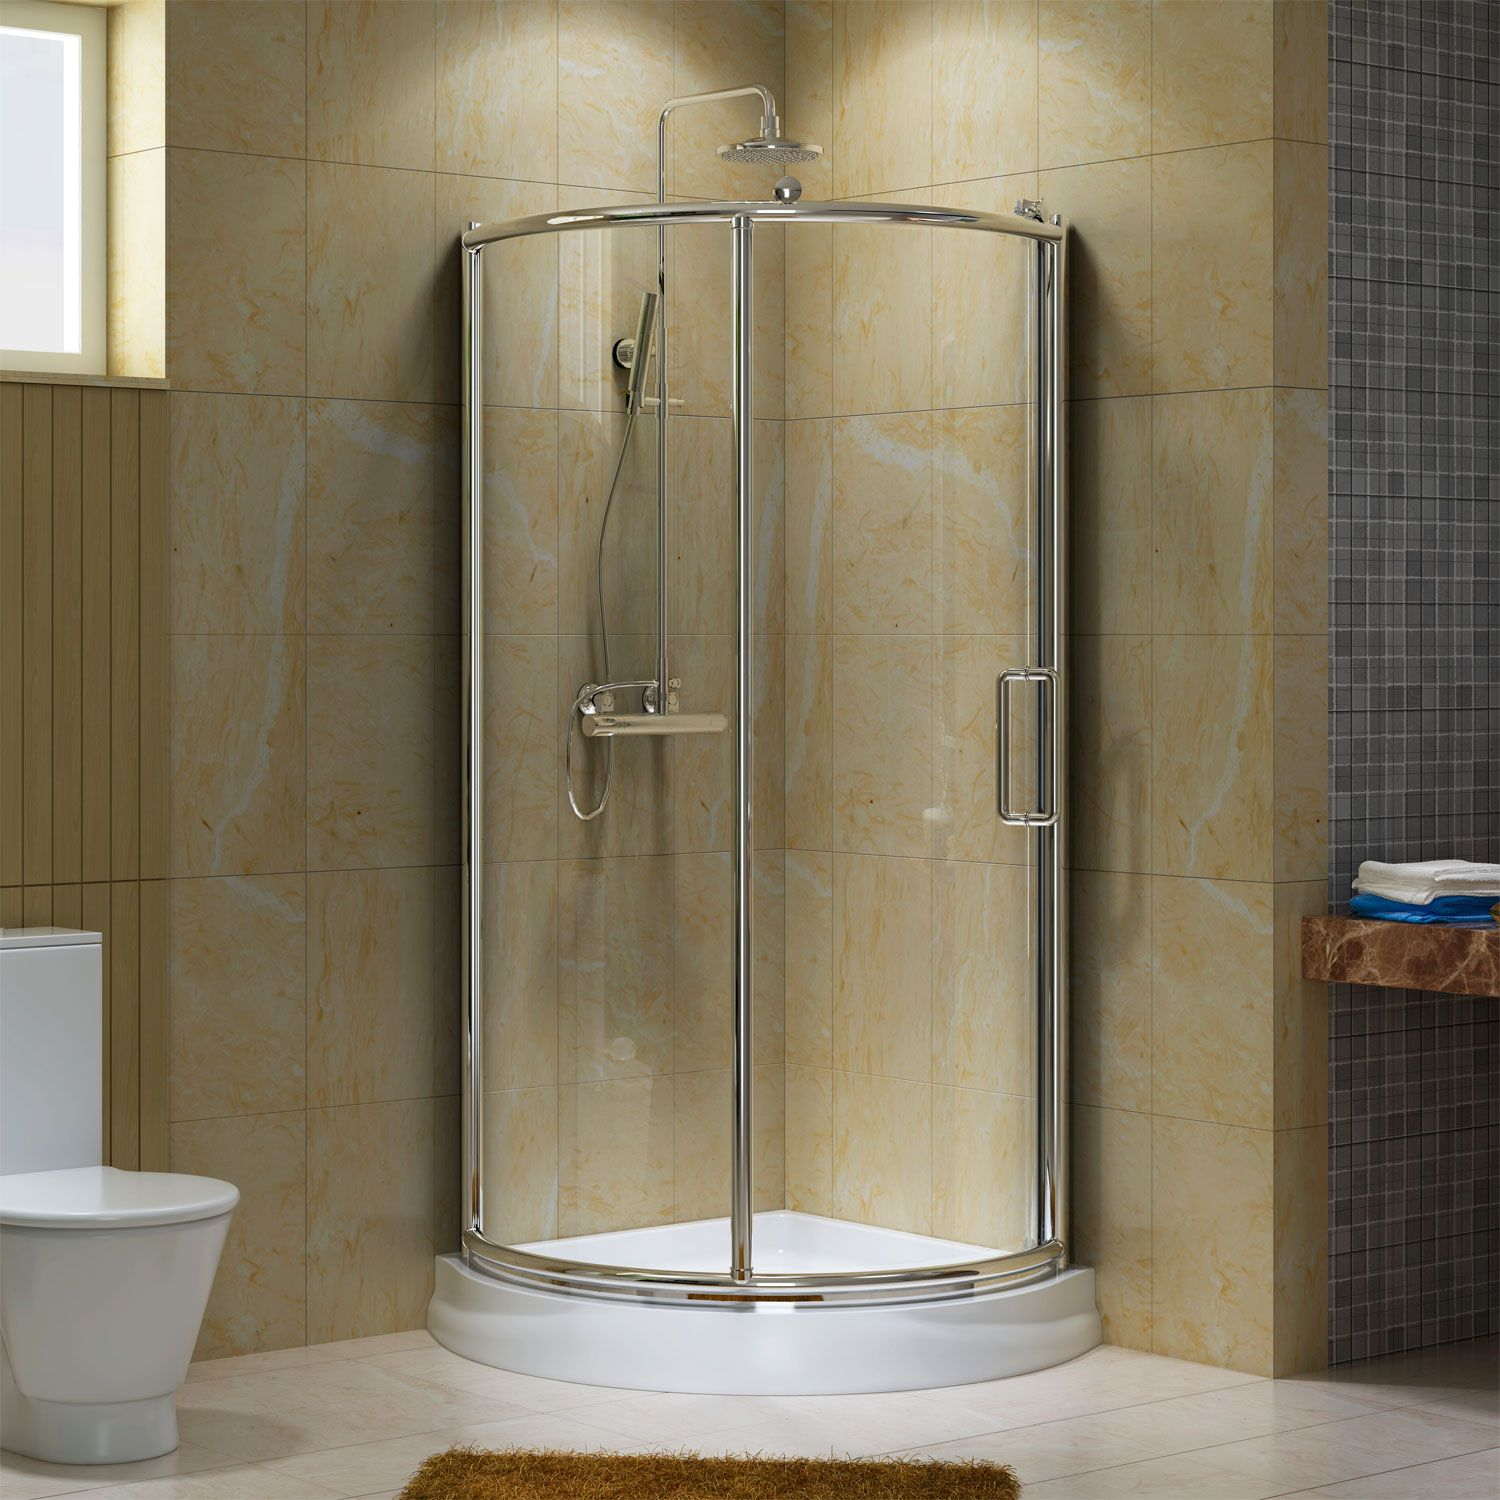 38 Webber Corner Shower Enclosure Small Bathroom Pinterest Corner Shower Enclosures